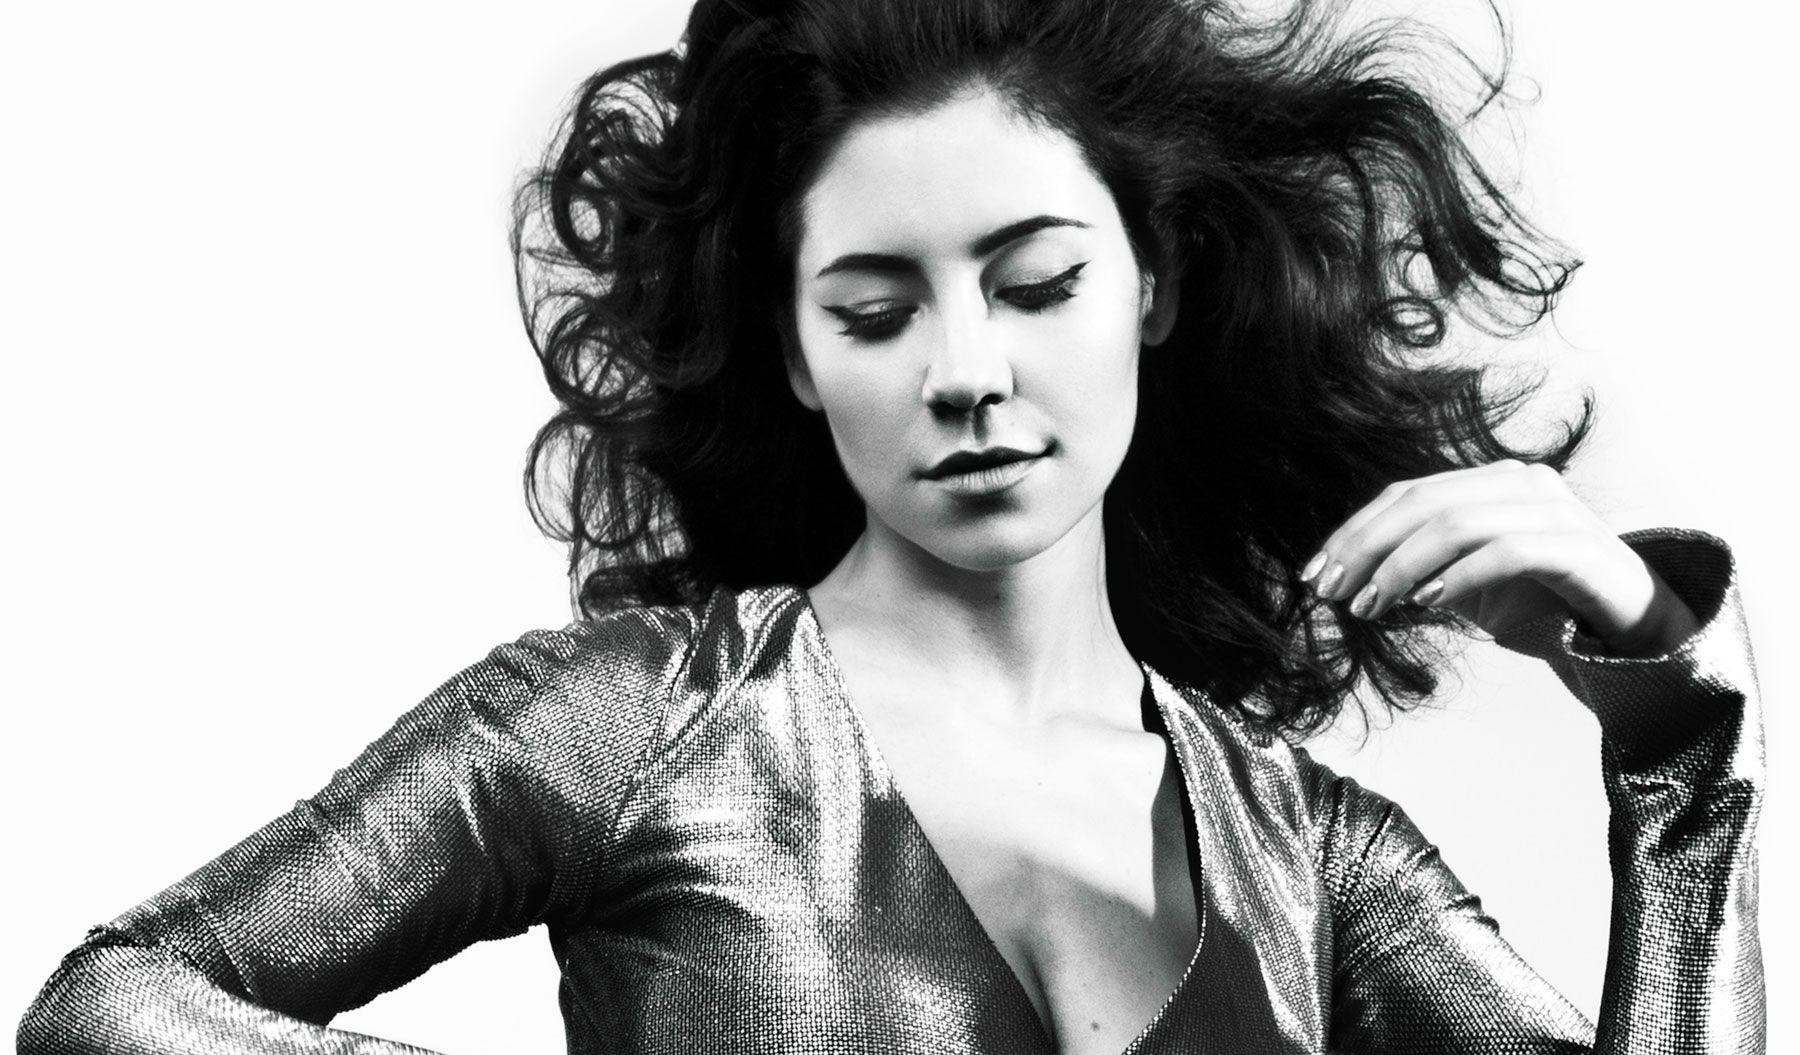 1800x1055px Awesome Marina And The Diamonds backgrounds 66